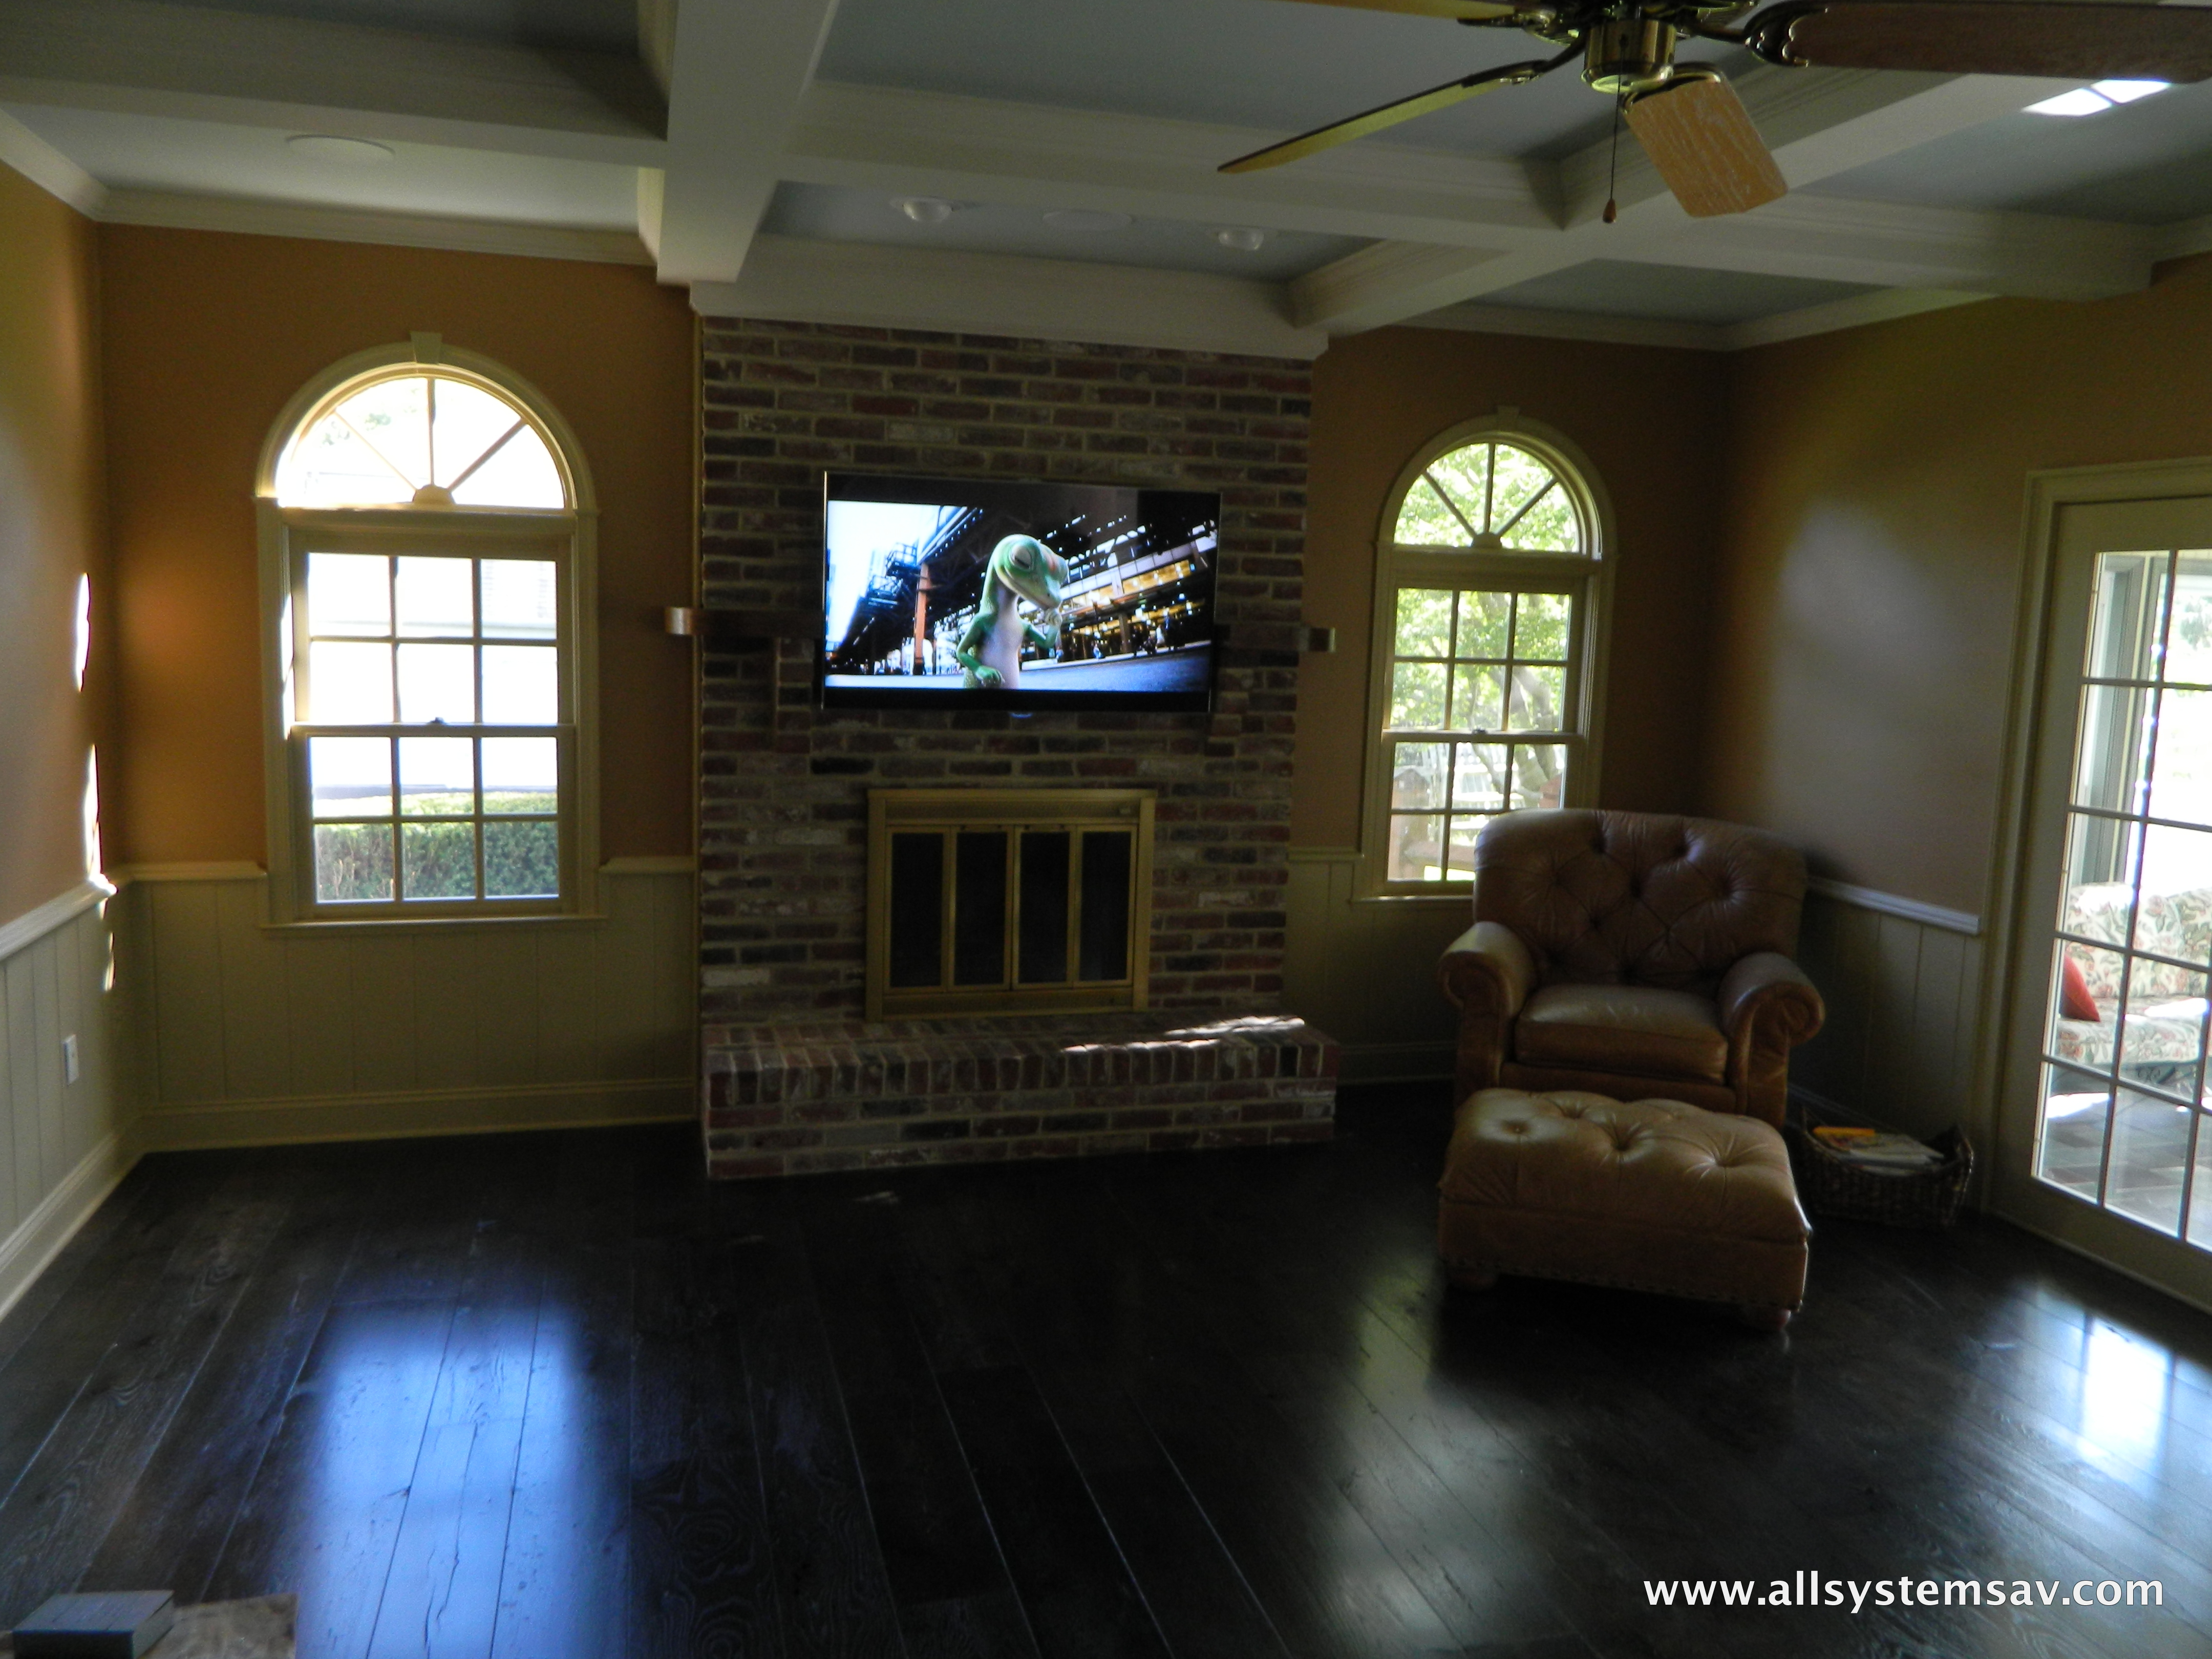 How To Install A Tv On A Brick Wall Installing